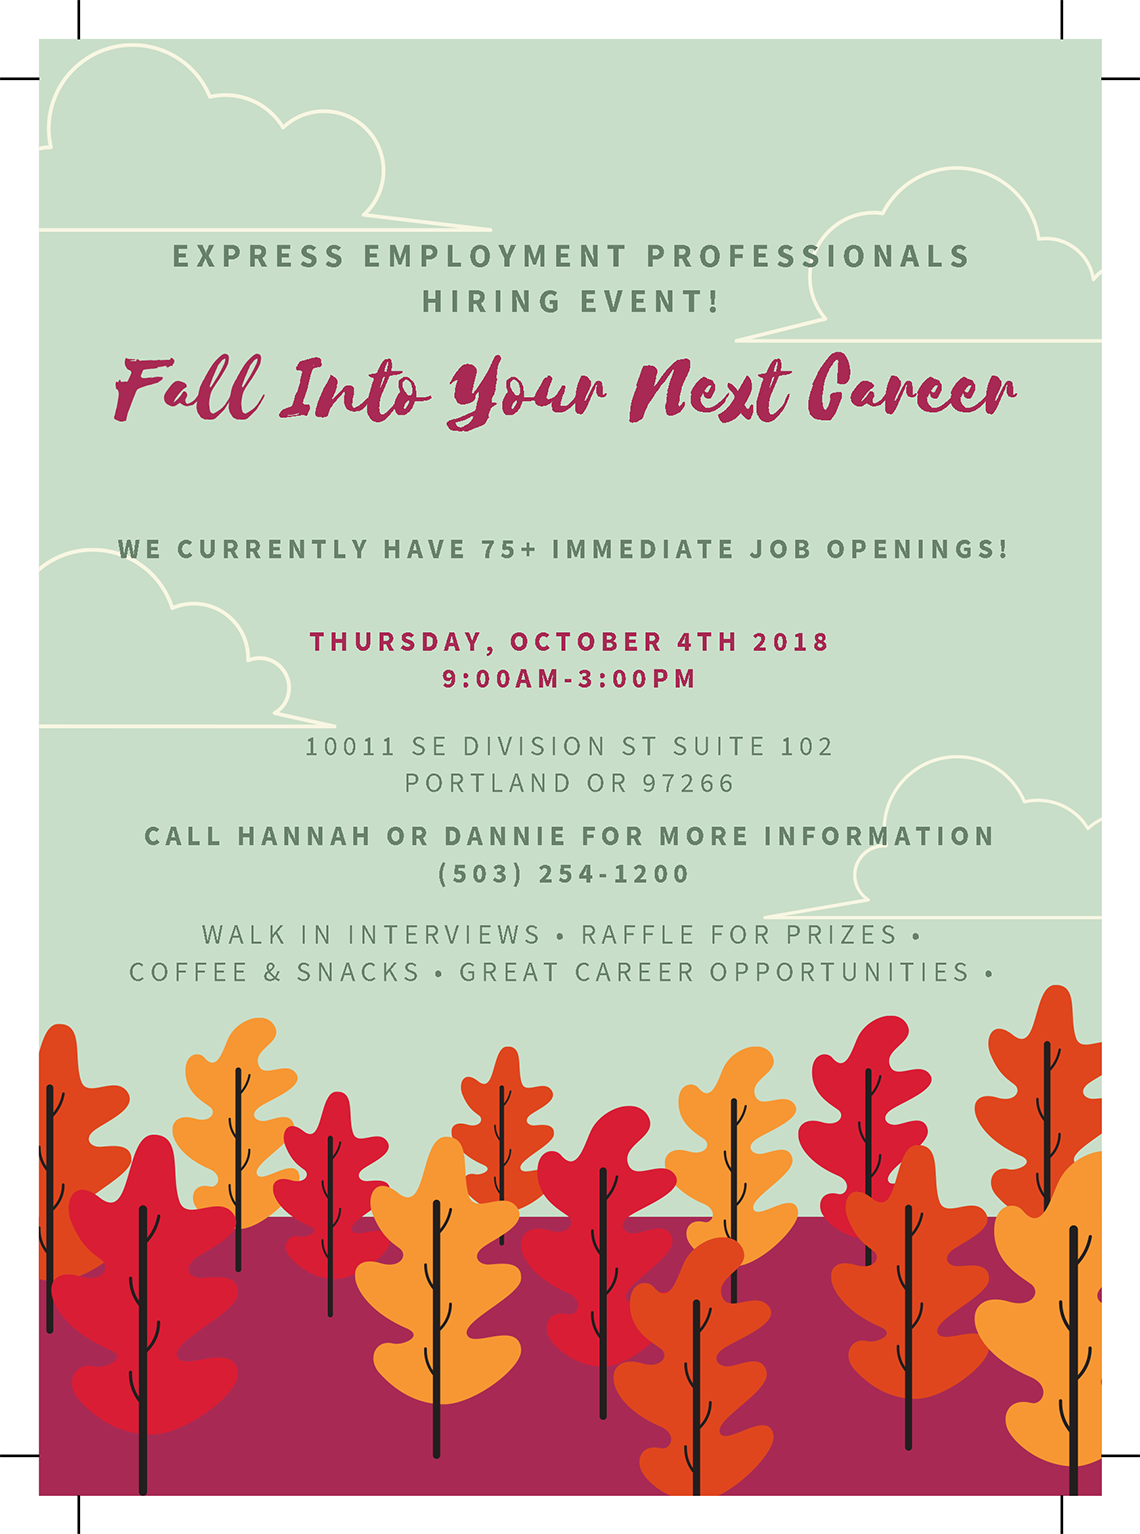 Fall Into Your Next Career - Now Hiring in Portland, OR